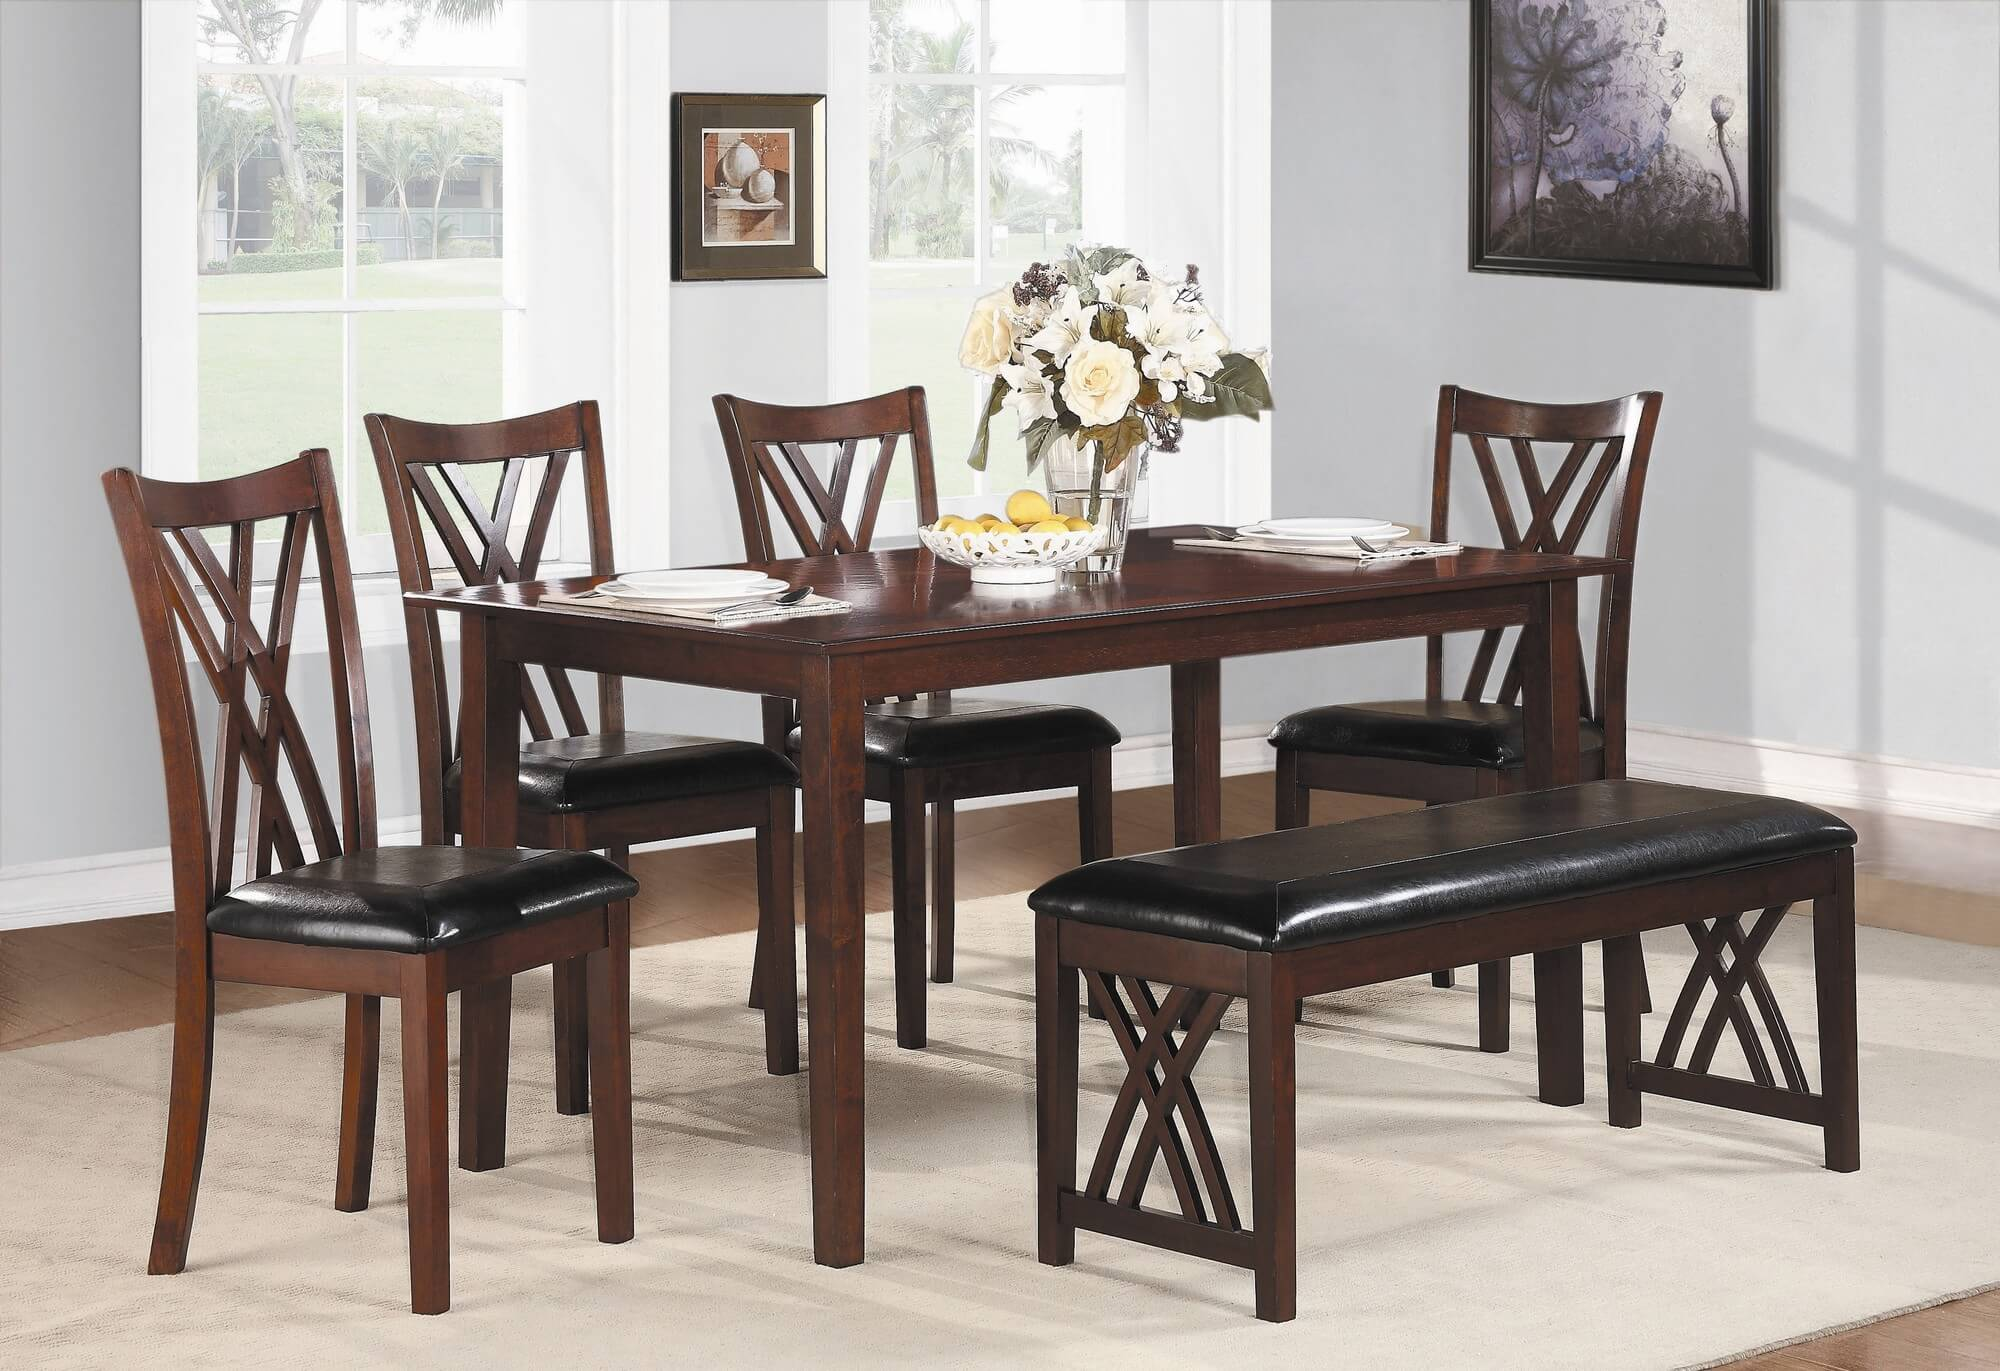 26 big small dining room sets with bench seating ForDinette Sets With Bench Seating